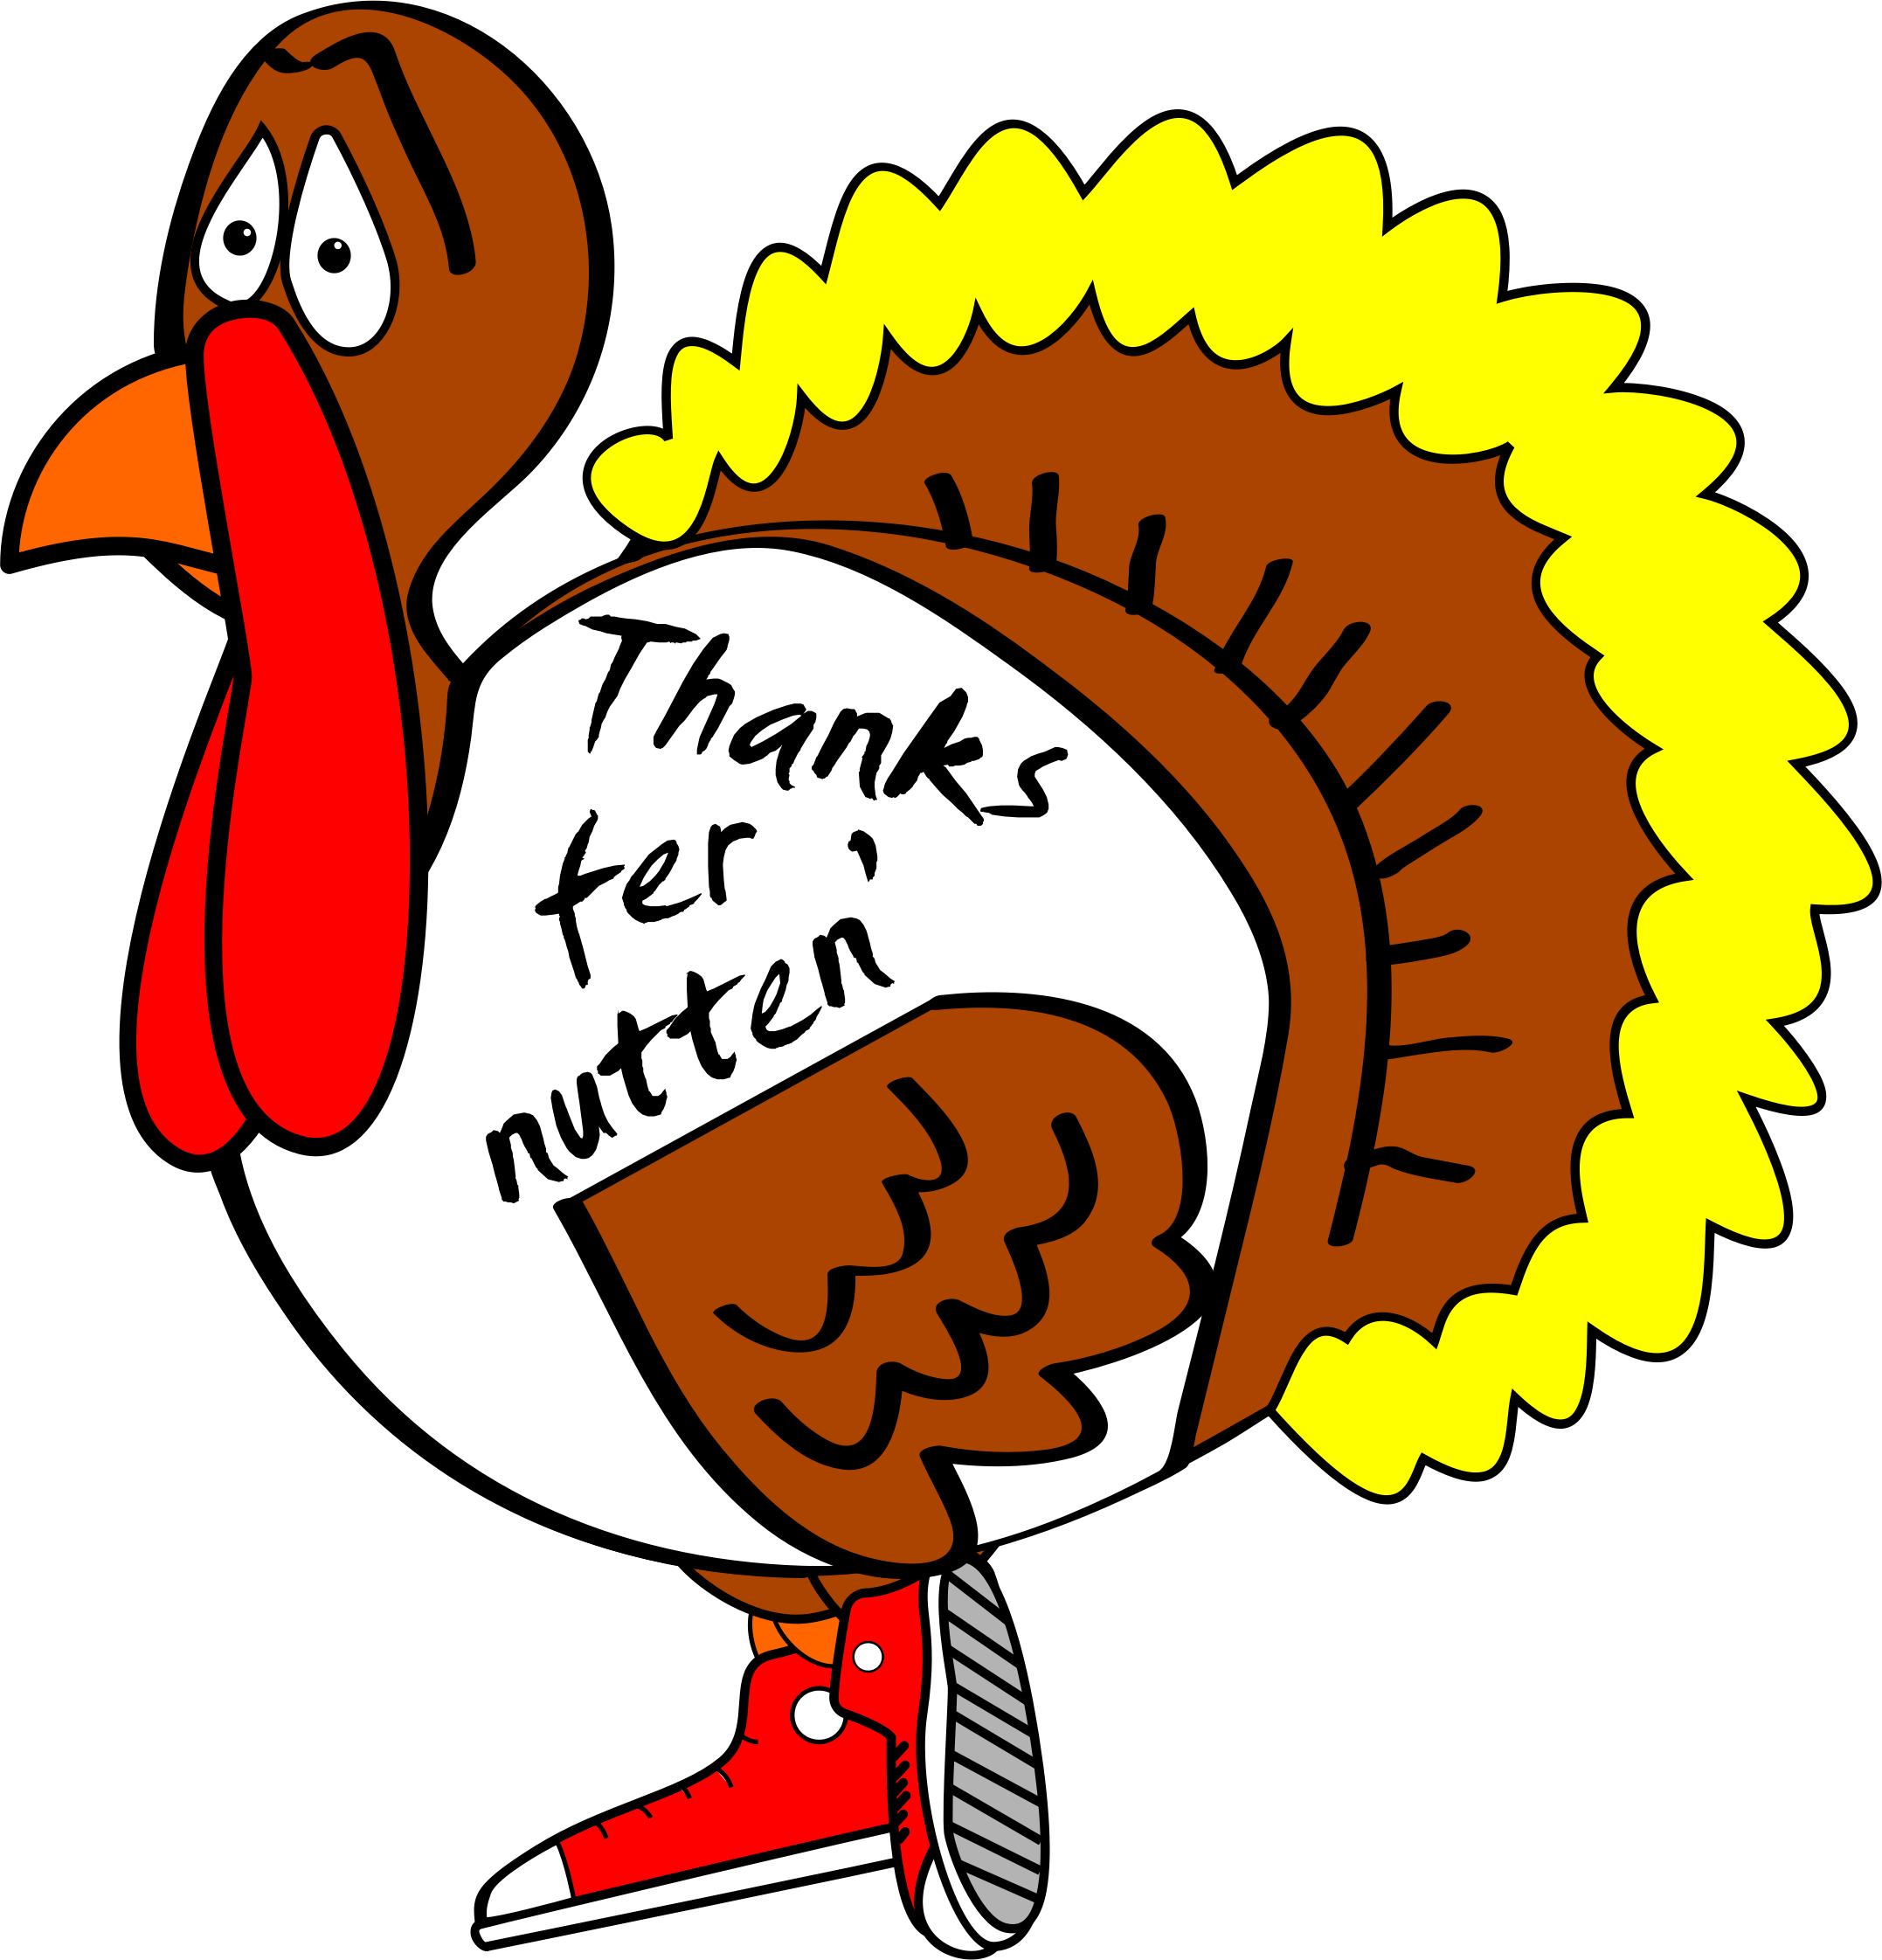 Turkey clipart black jpg freeuse library Silly Turkey Clipart at GetDrawings.com | Free for personal use ... jpg freeuse library